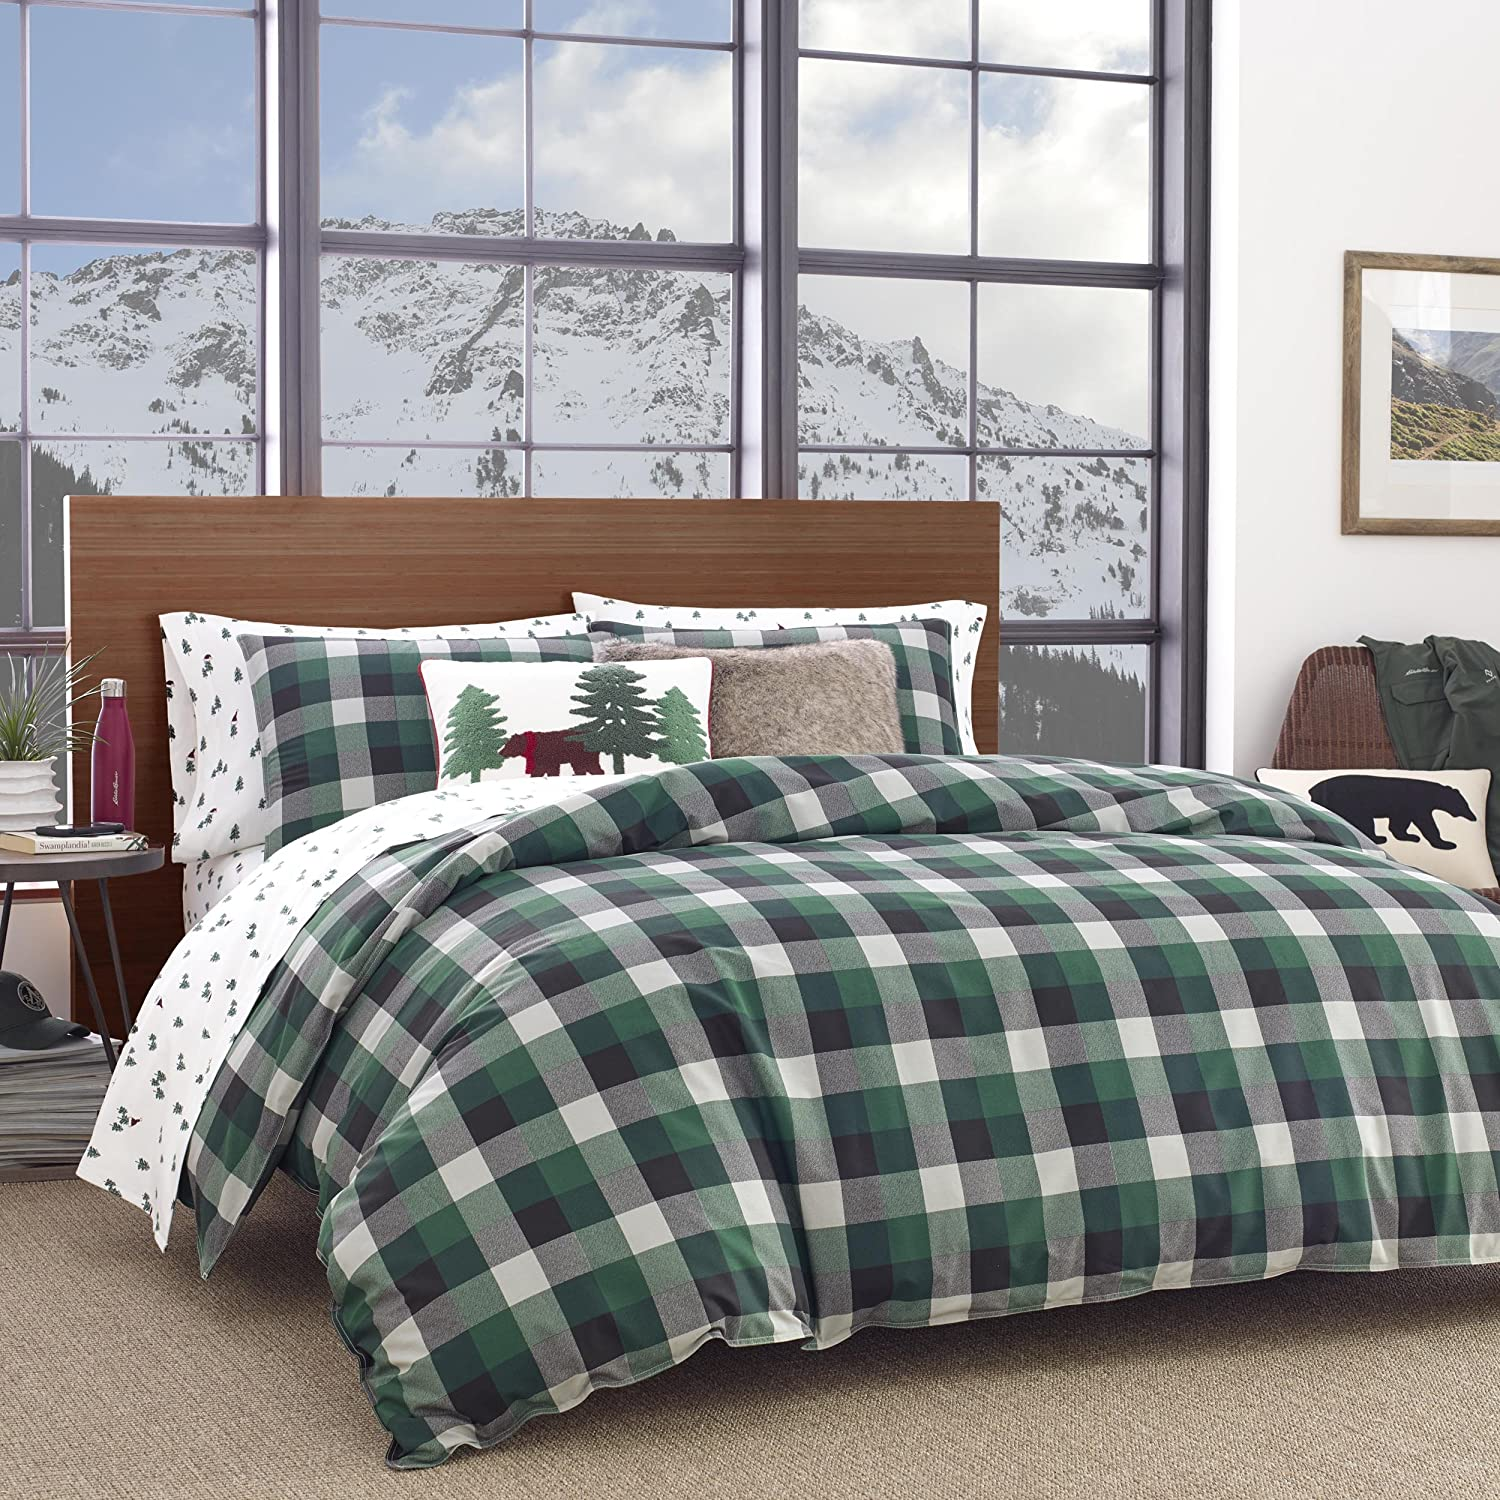 Eddie Bauer Birch Cove Plaid Comforter Set, King, Dark Green